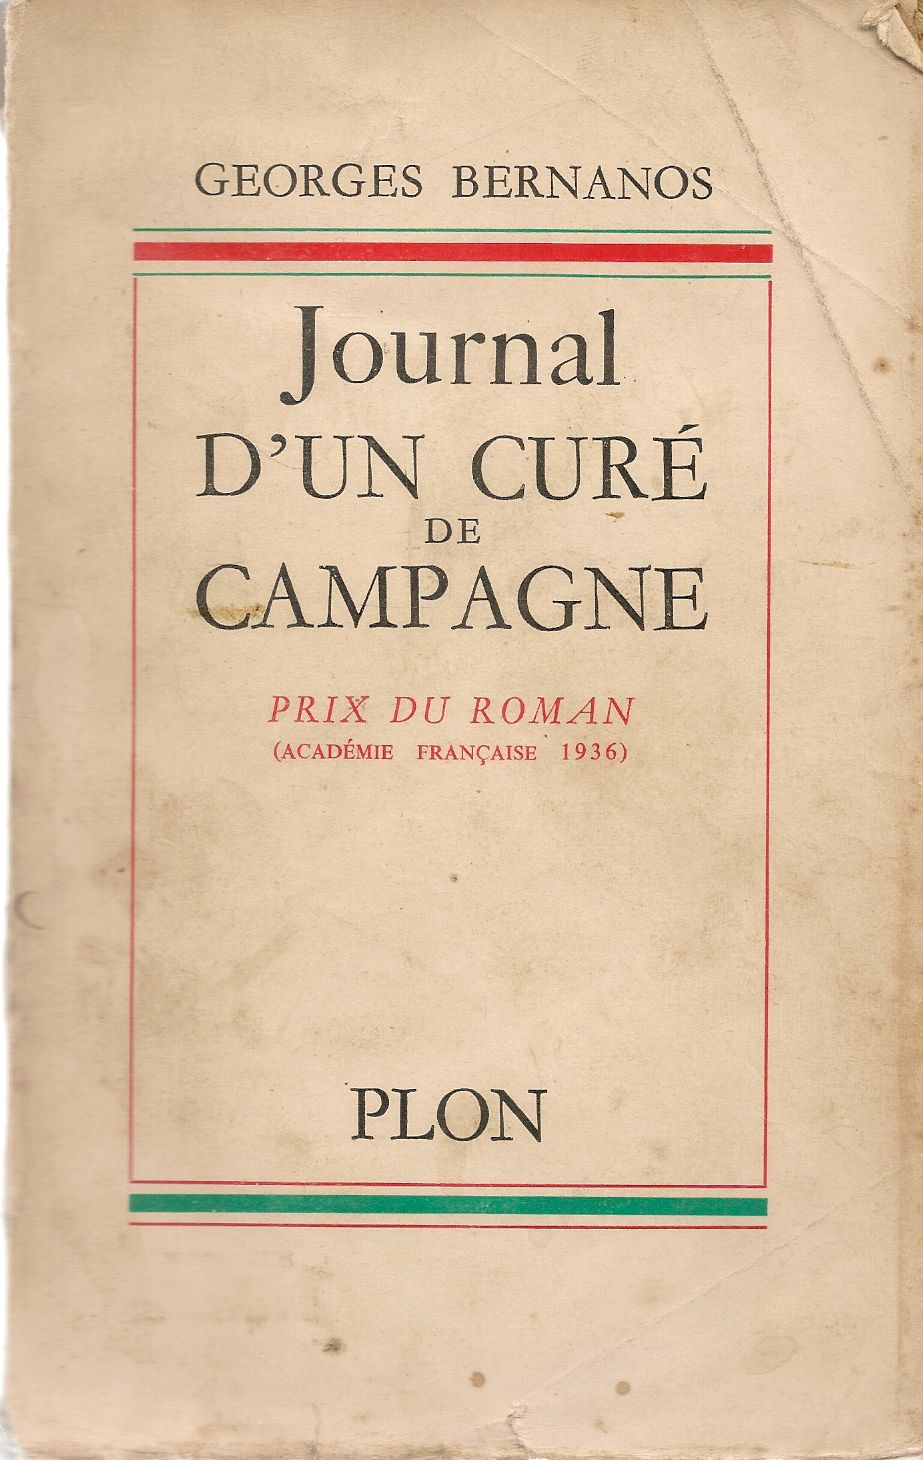 JOURNAL D'UN CURE DE CAMPAGNE - GEORGES BERNANOS - PLON 1958 - FRENCH TEXT